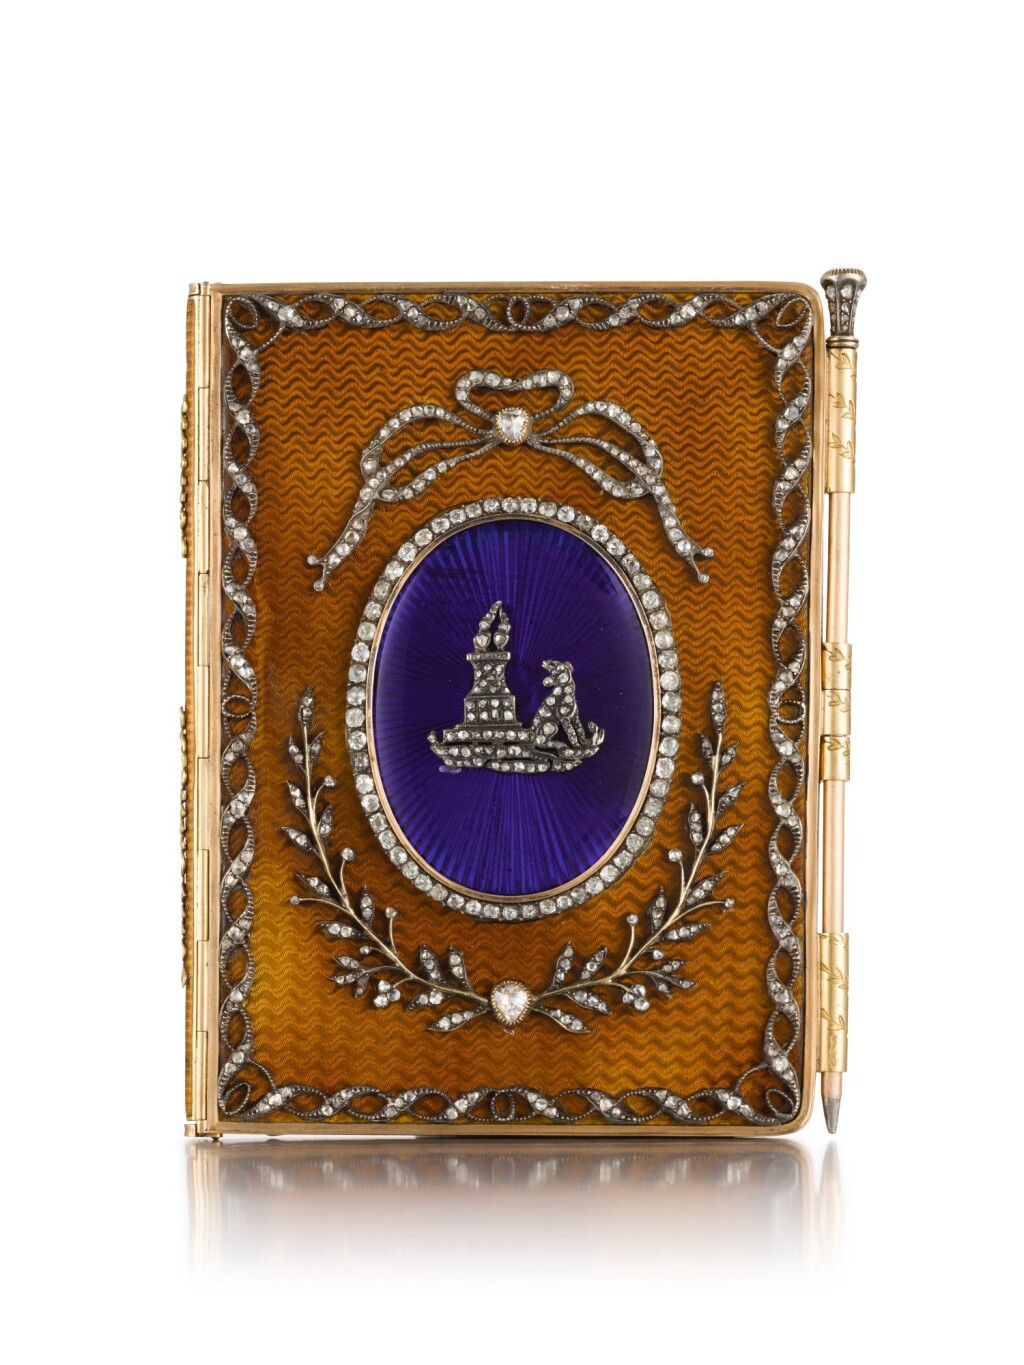 A JEWELLED GOLD, ENAMEL AND IVORY HISTORISMUS CARNET, POSSIBLY ITALIAN, CIRCA 1910